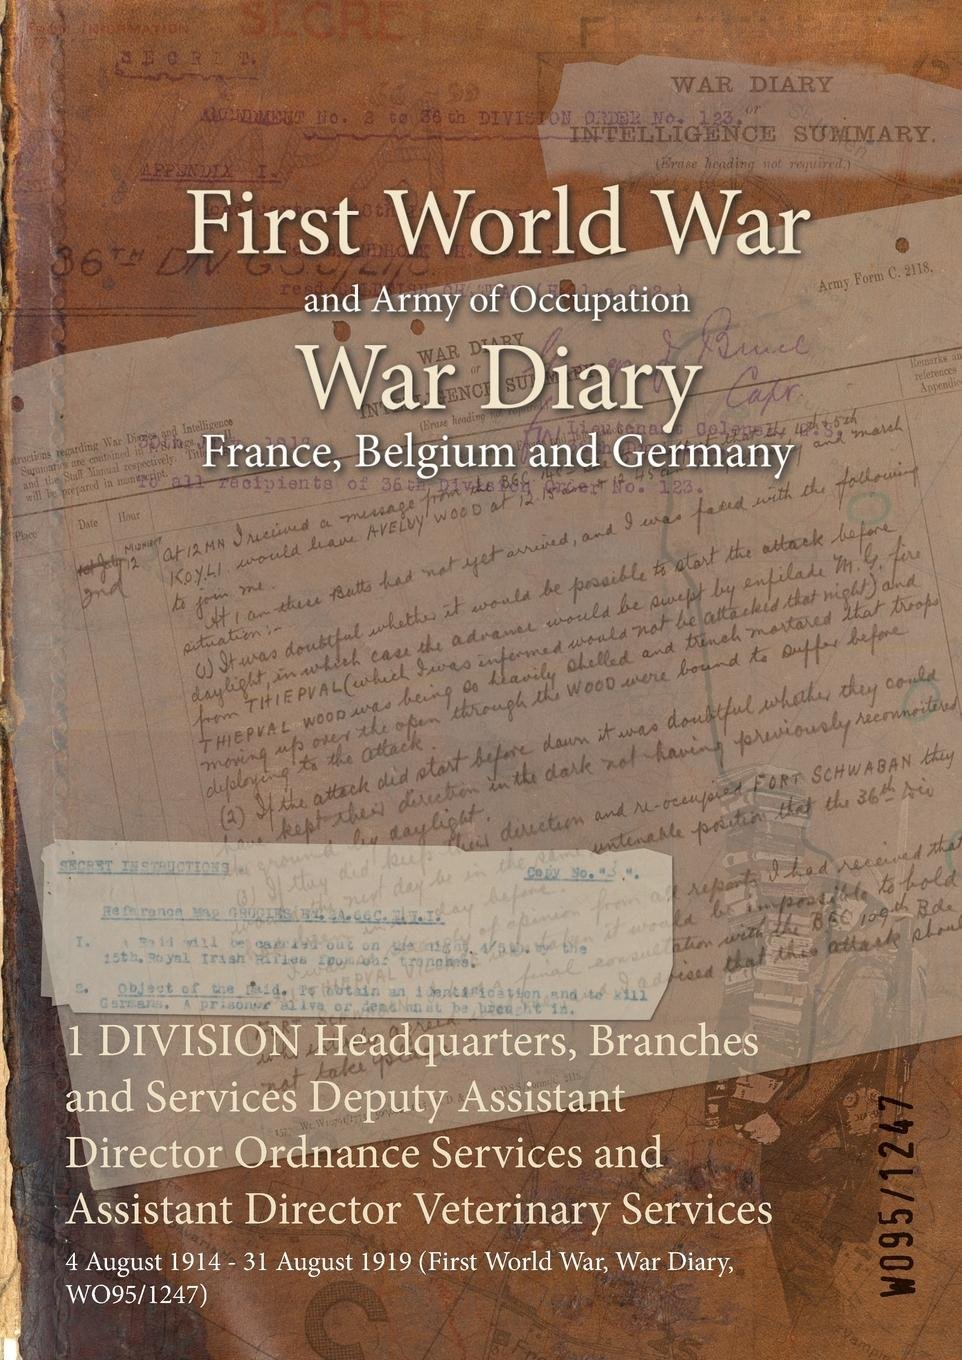 Download 1 Division Headquarters, Branches and Services Deputy Assistant Director Ordnance Services and Assistant Director Veterinary Services: 4 August 1914 - ... 1919 (First World War, War Diary, Wo95/1247) pdf